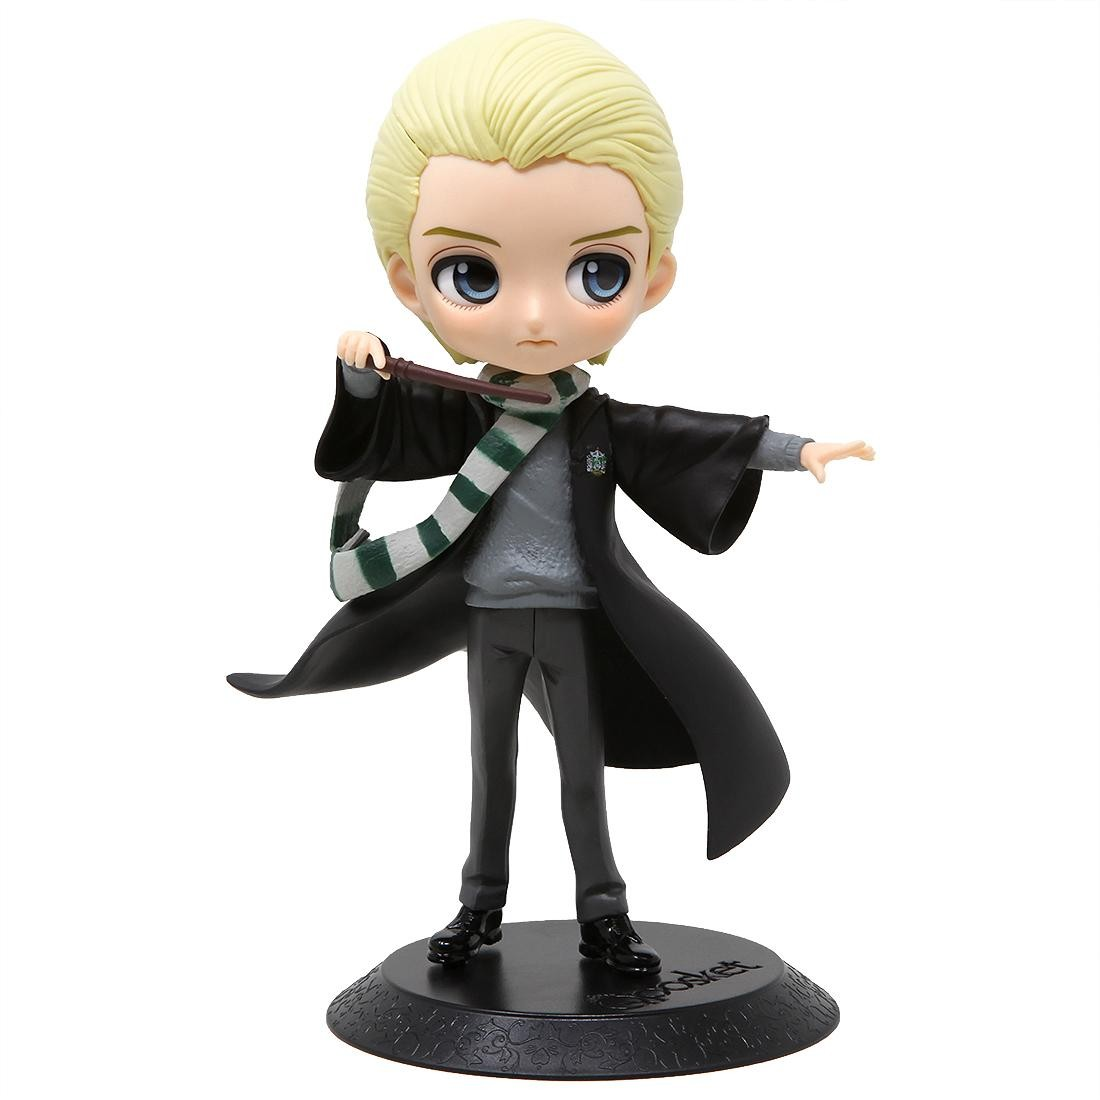 Banpresto Q Posket Harry Potter Draco Malfoy Figure - Normal Color Ver. A (yellow)